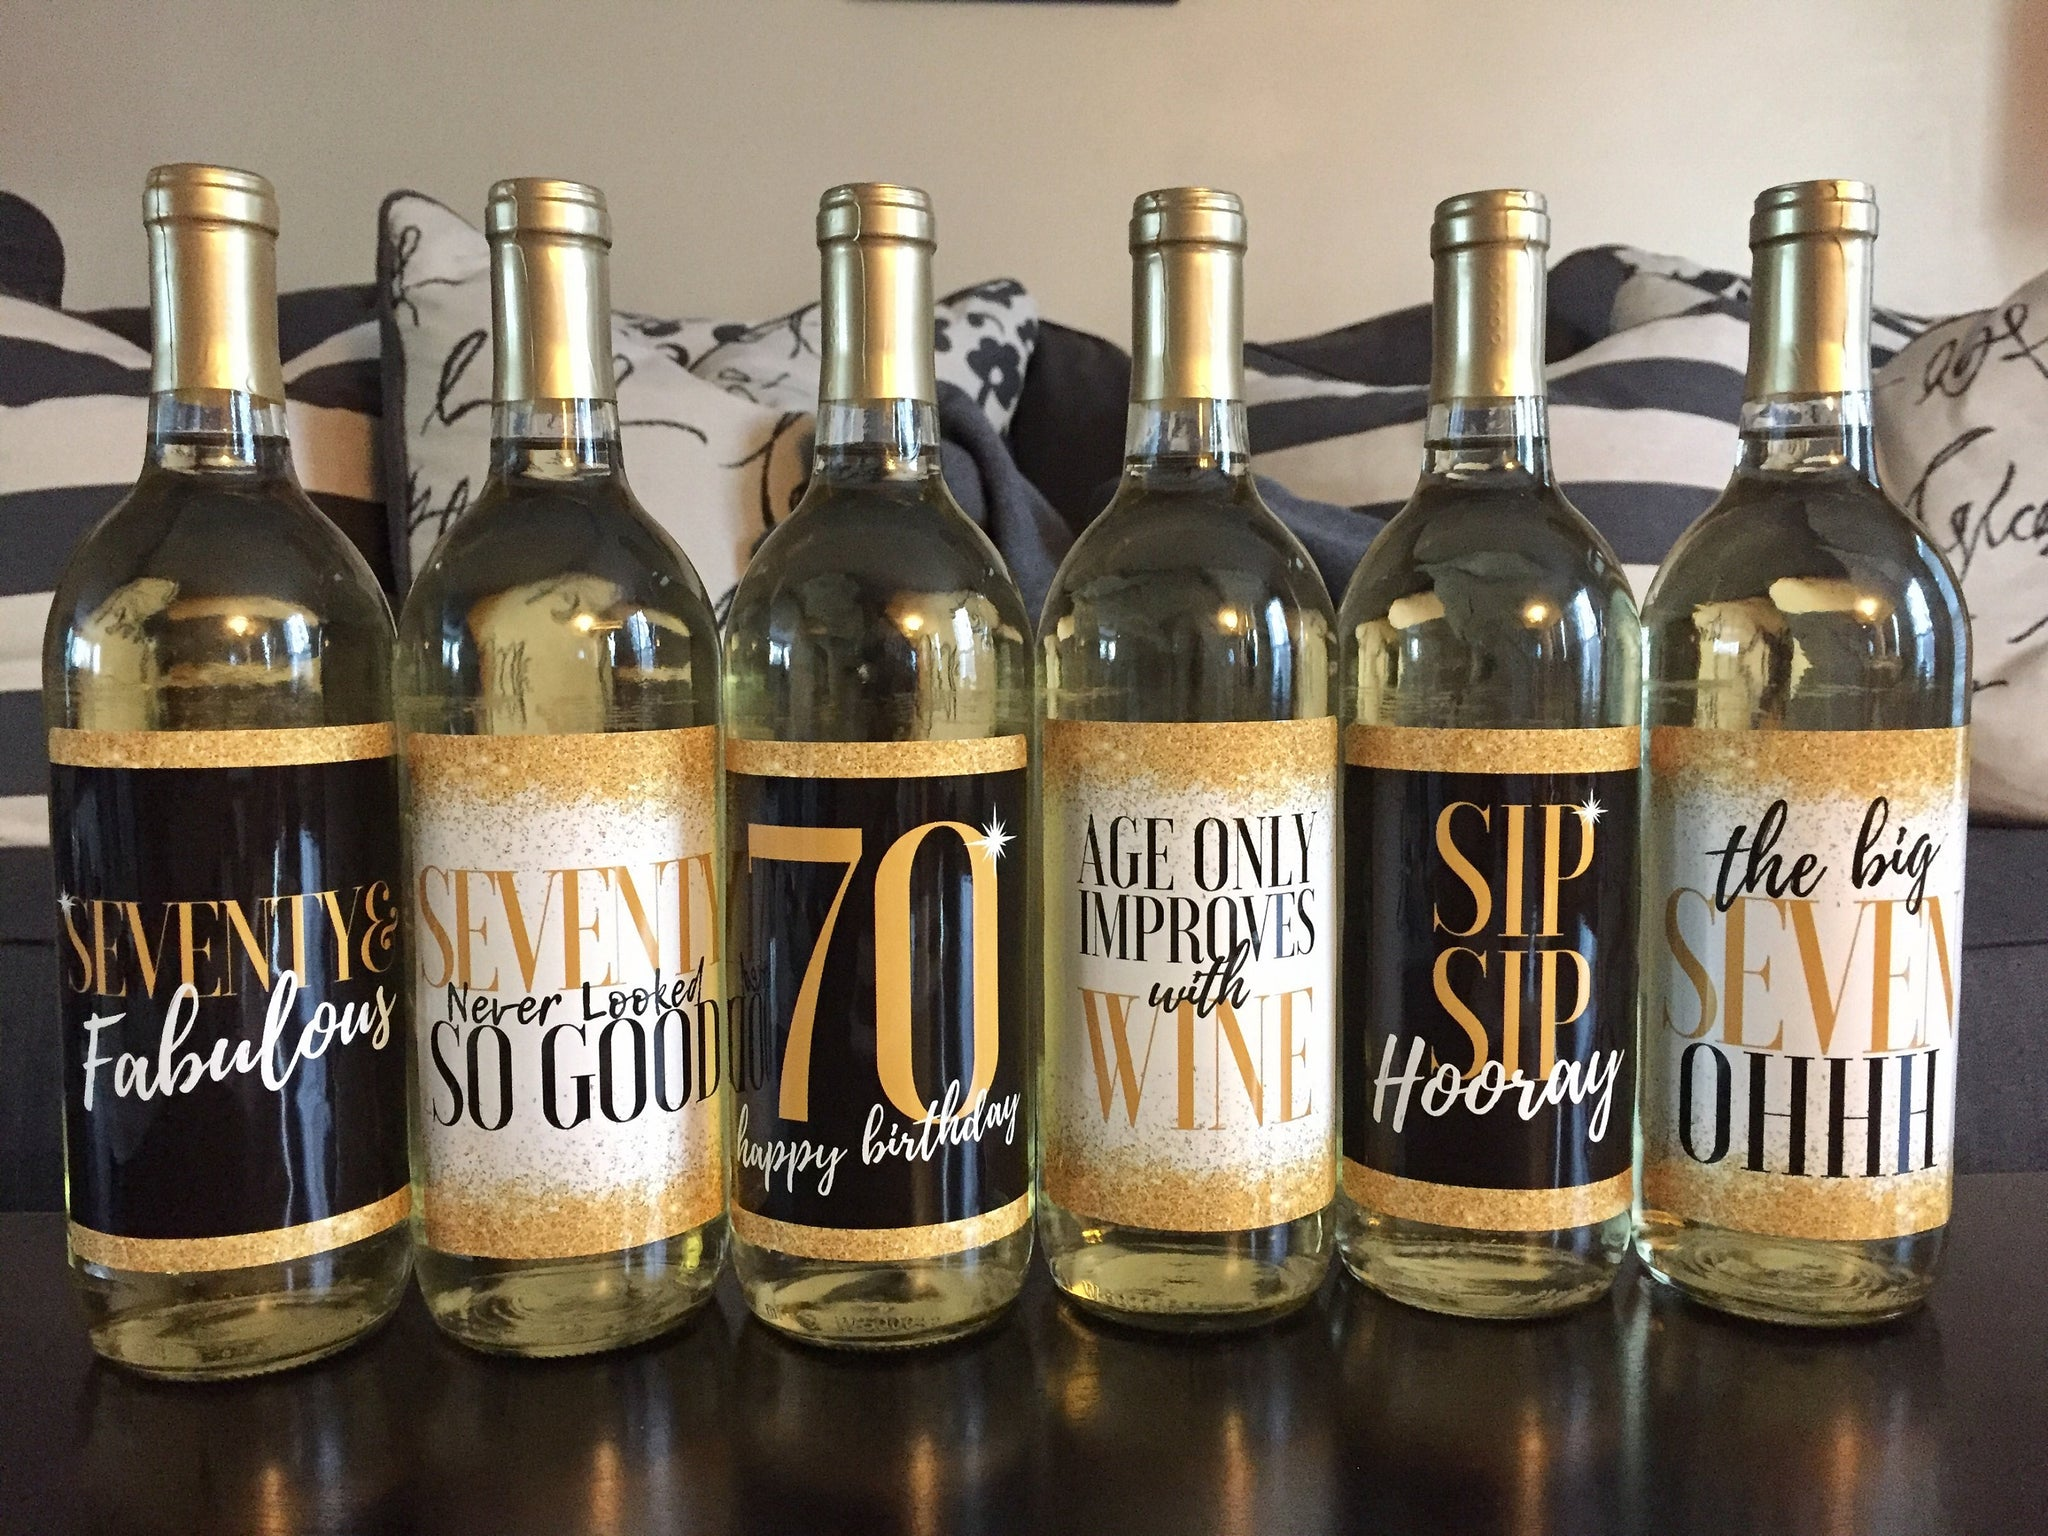 6 Premium 70th Birthday Wine Bottle Labels or Stickers Present, Funny Black & Gold Party Decorations Supplies For Friend, Wife, Girl, Mom